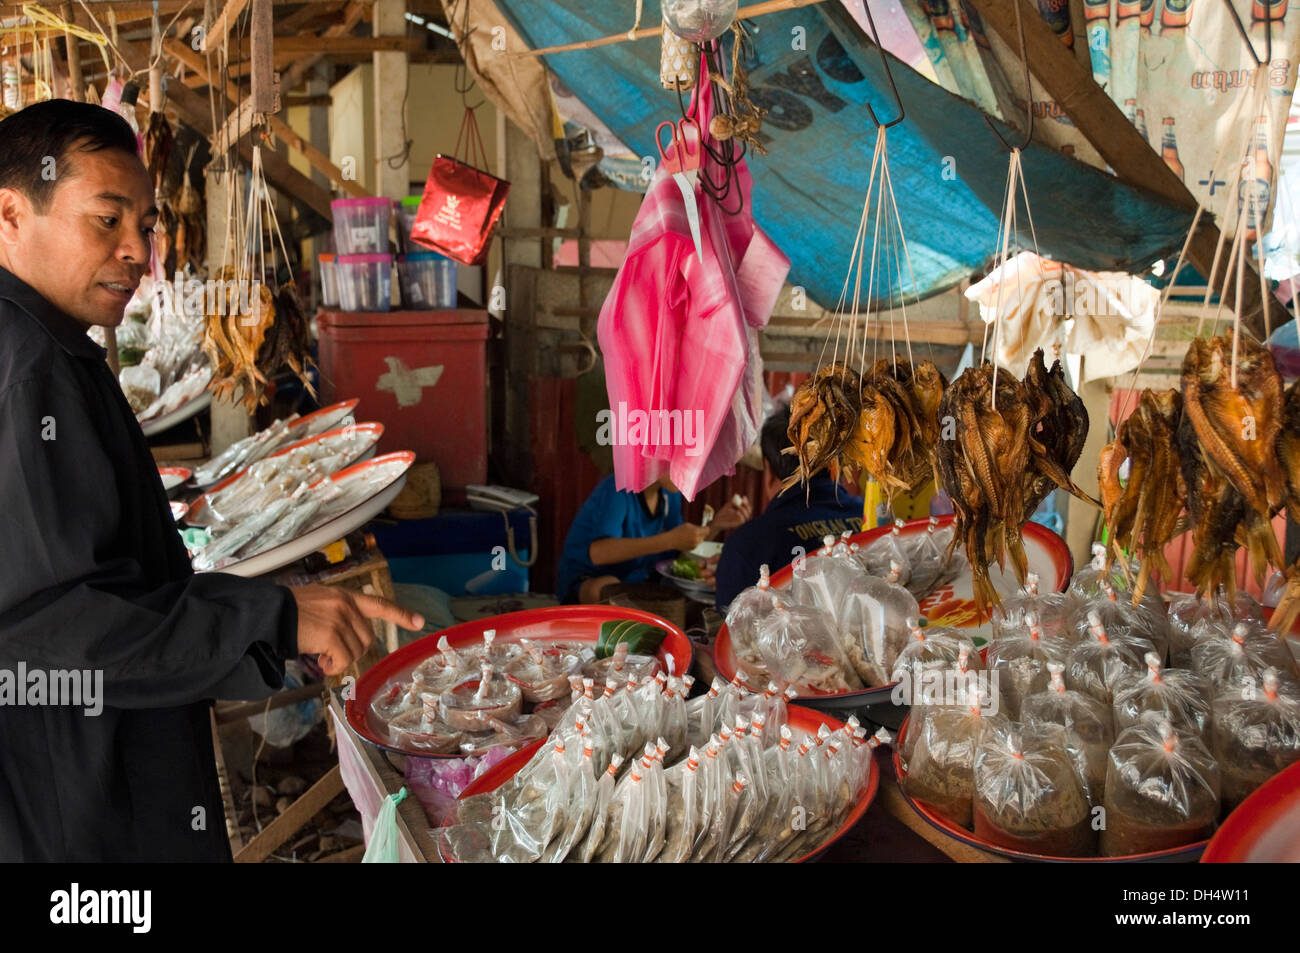 Horizontal portrait of a local Lao man deciding what to buy at a food market in Laos. - Stock Image